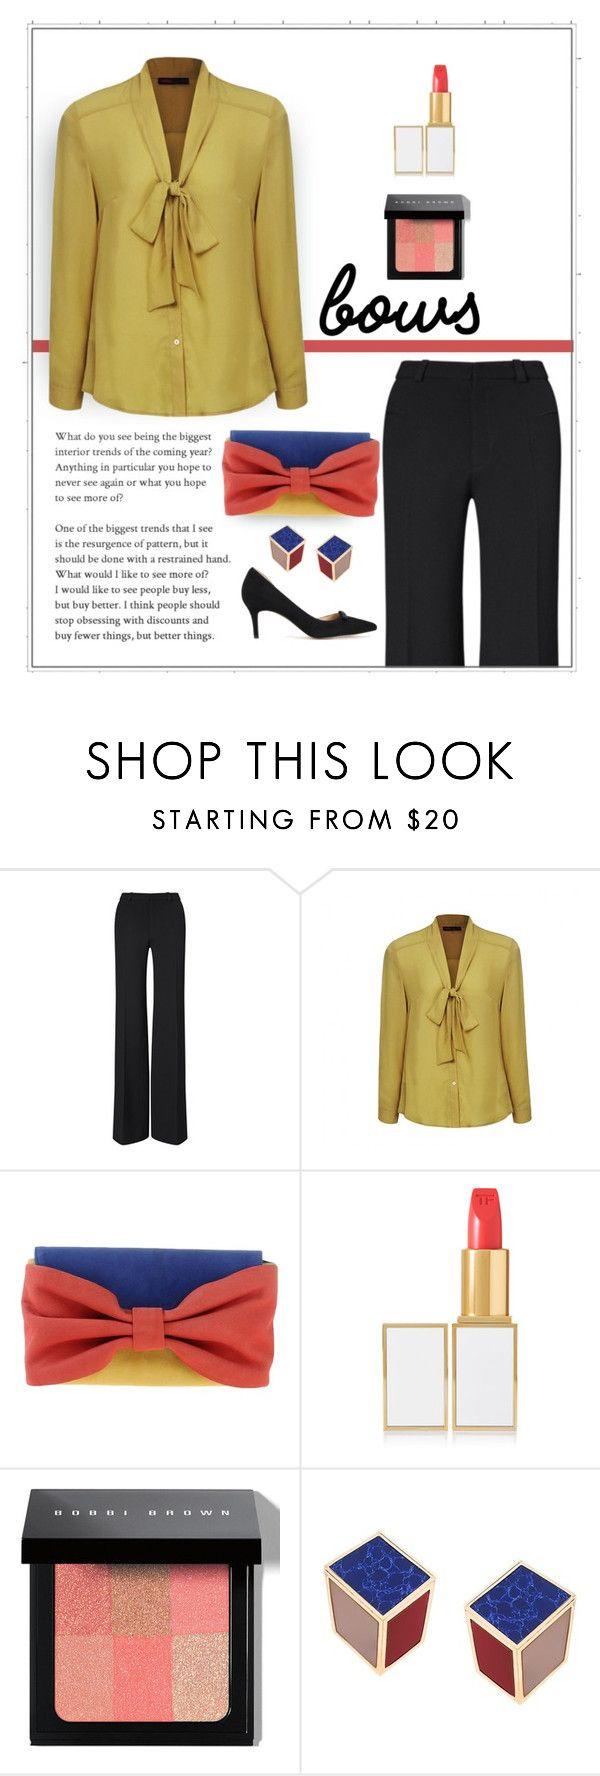 """""""Bowed Over"""" by patricia-dimmick on Polyvore featuring Roland Mouret, Ally Fashion, RED Valentino, Tom Ford, Bobbi Brown Cosmetics, Eshvi, Ann Taylor and bows"""